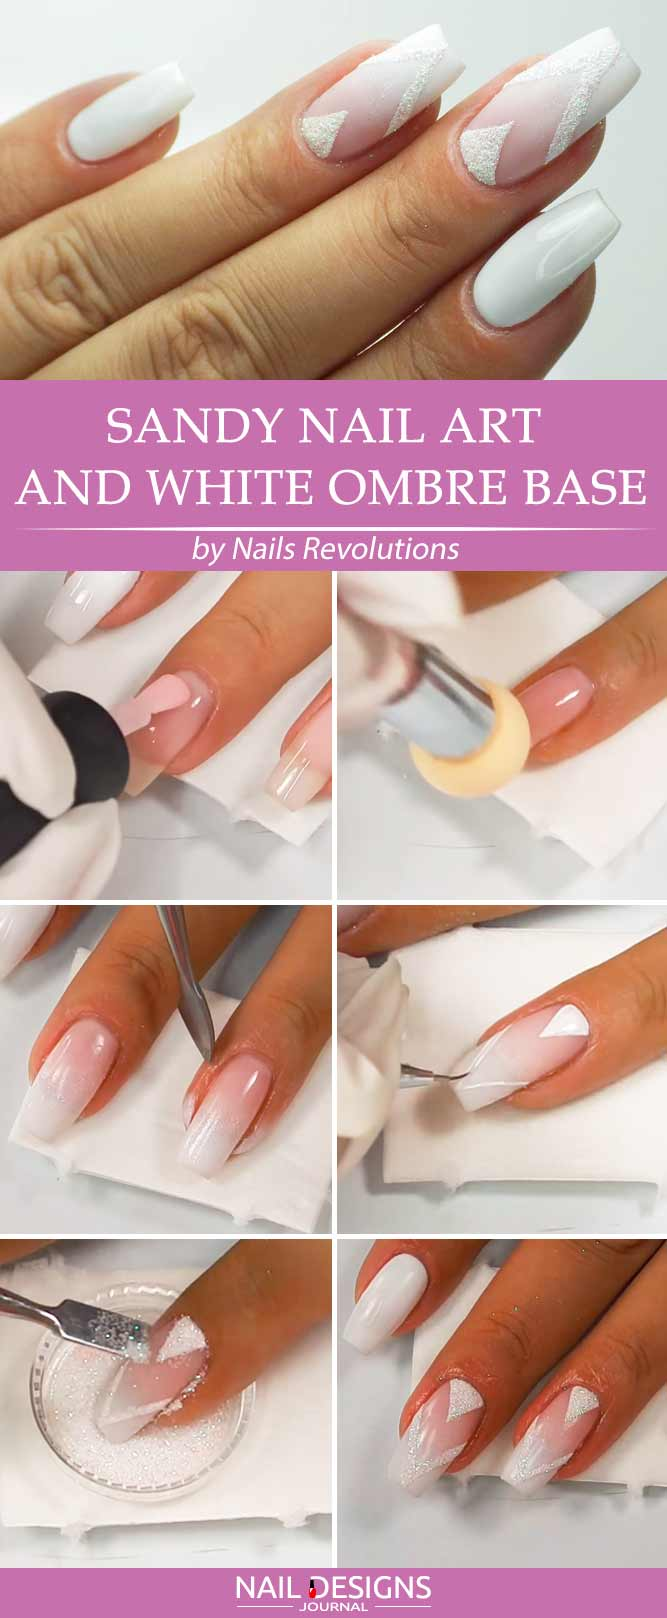 Sandy Nail Art und White Ombre Base